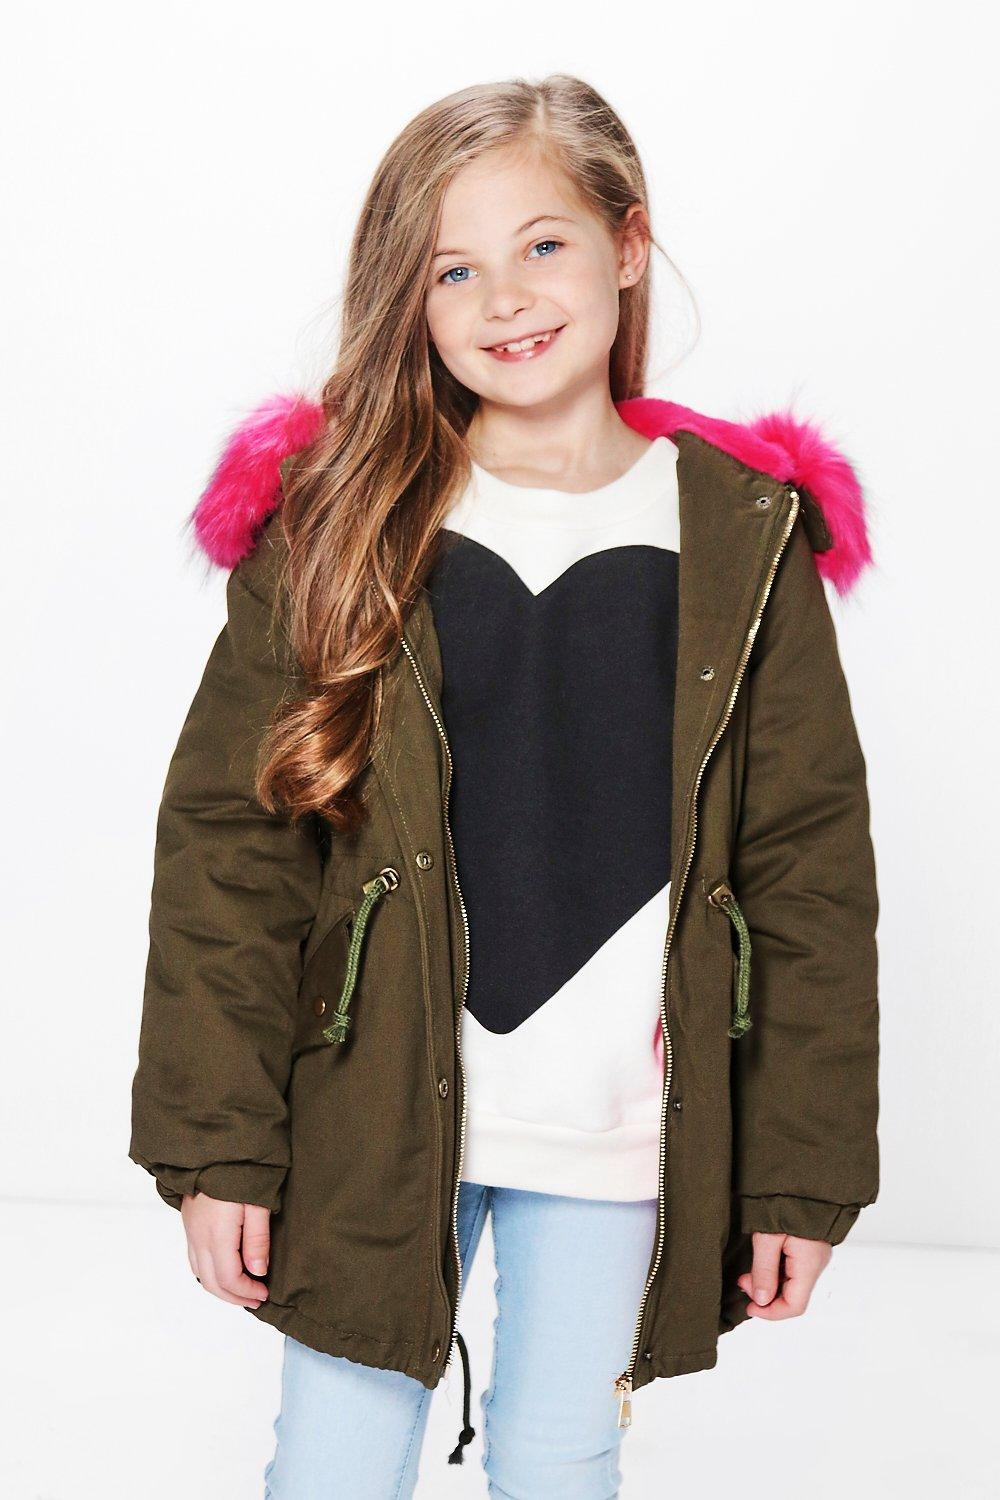 Girls Coats | Cheap Jackets & Winter Coats for Girls